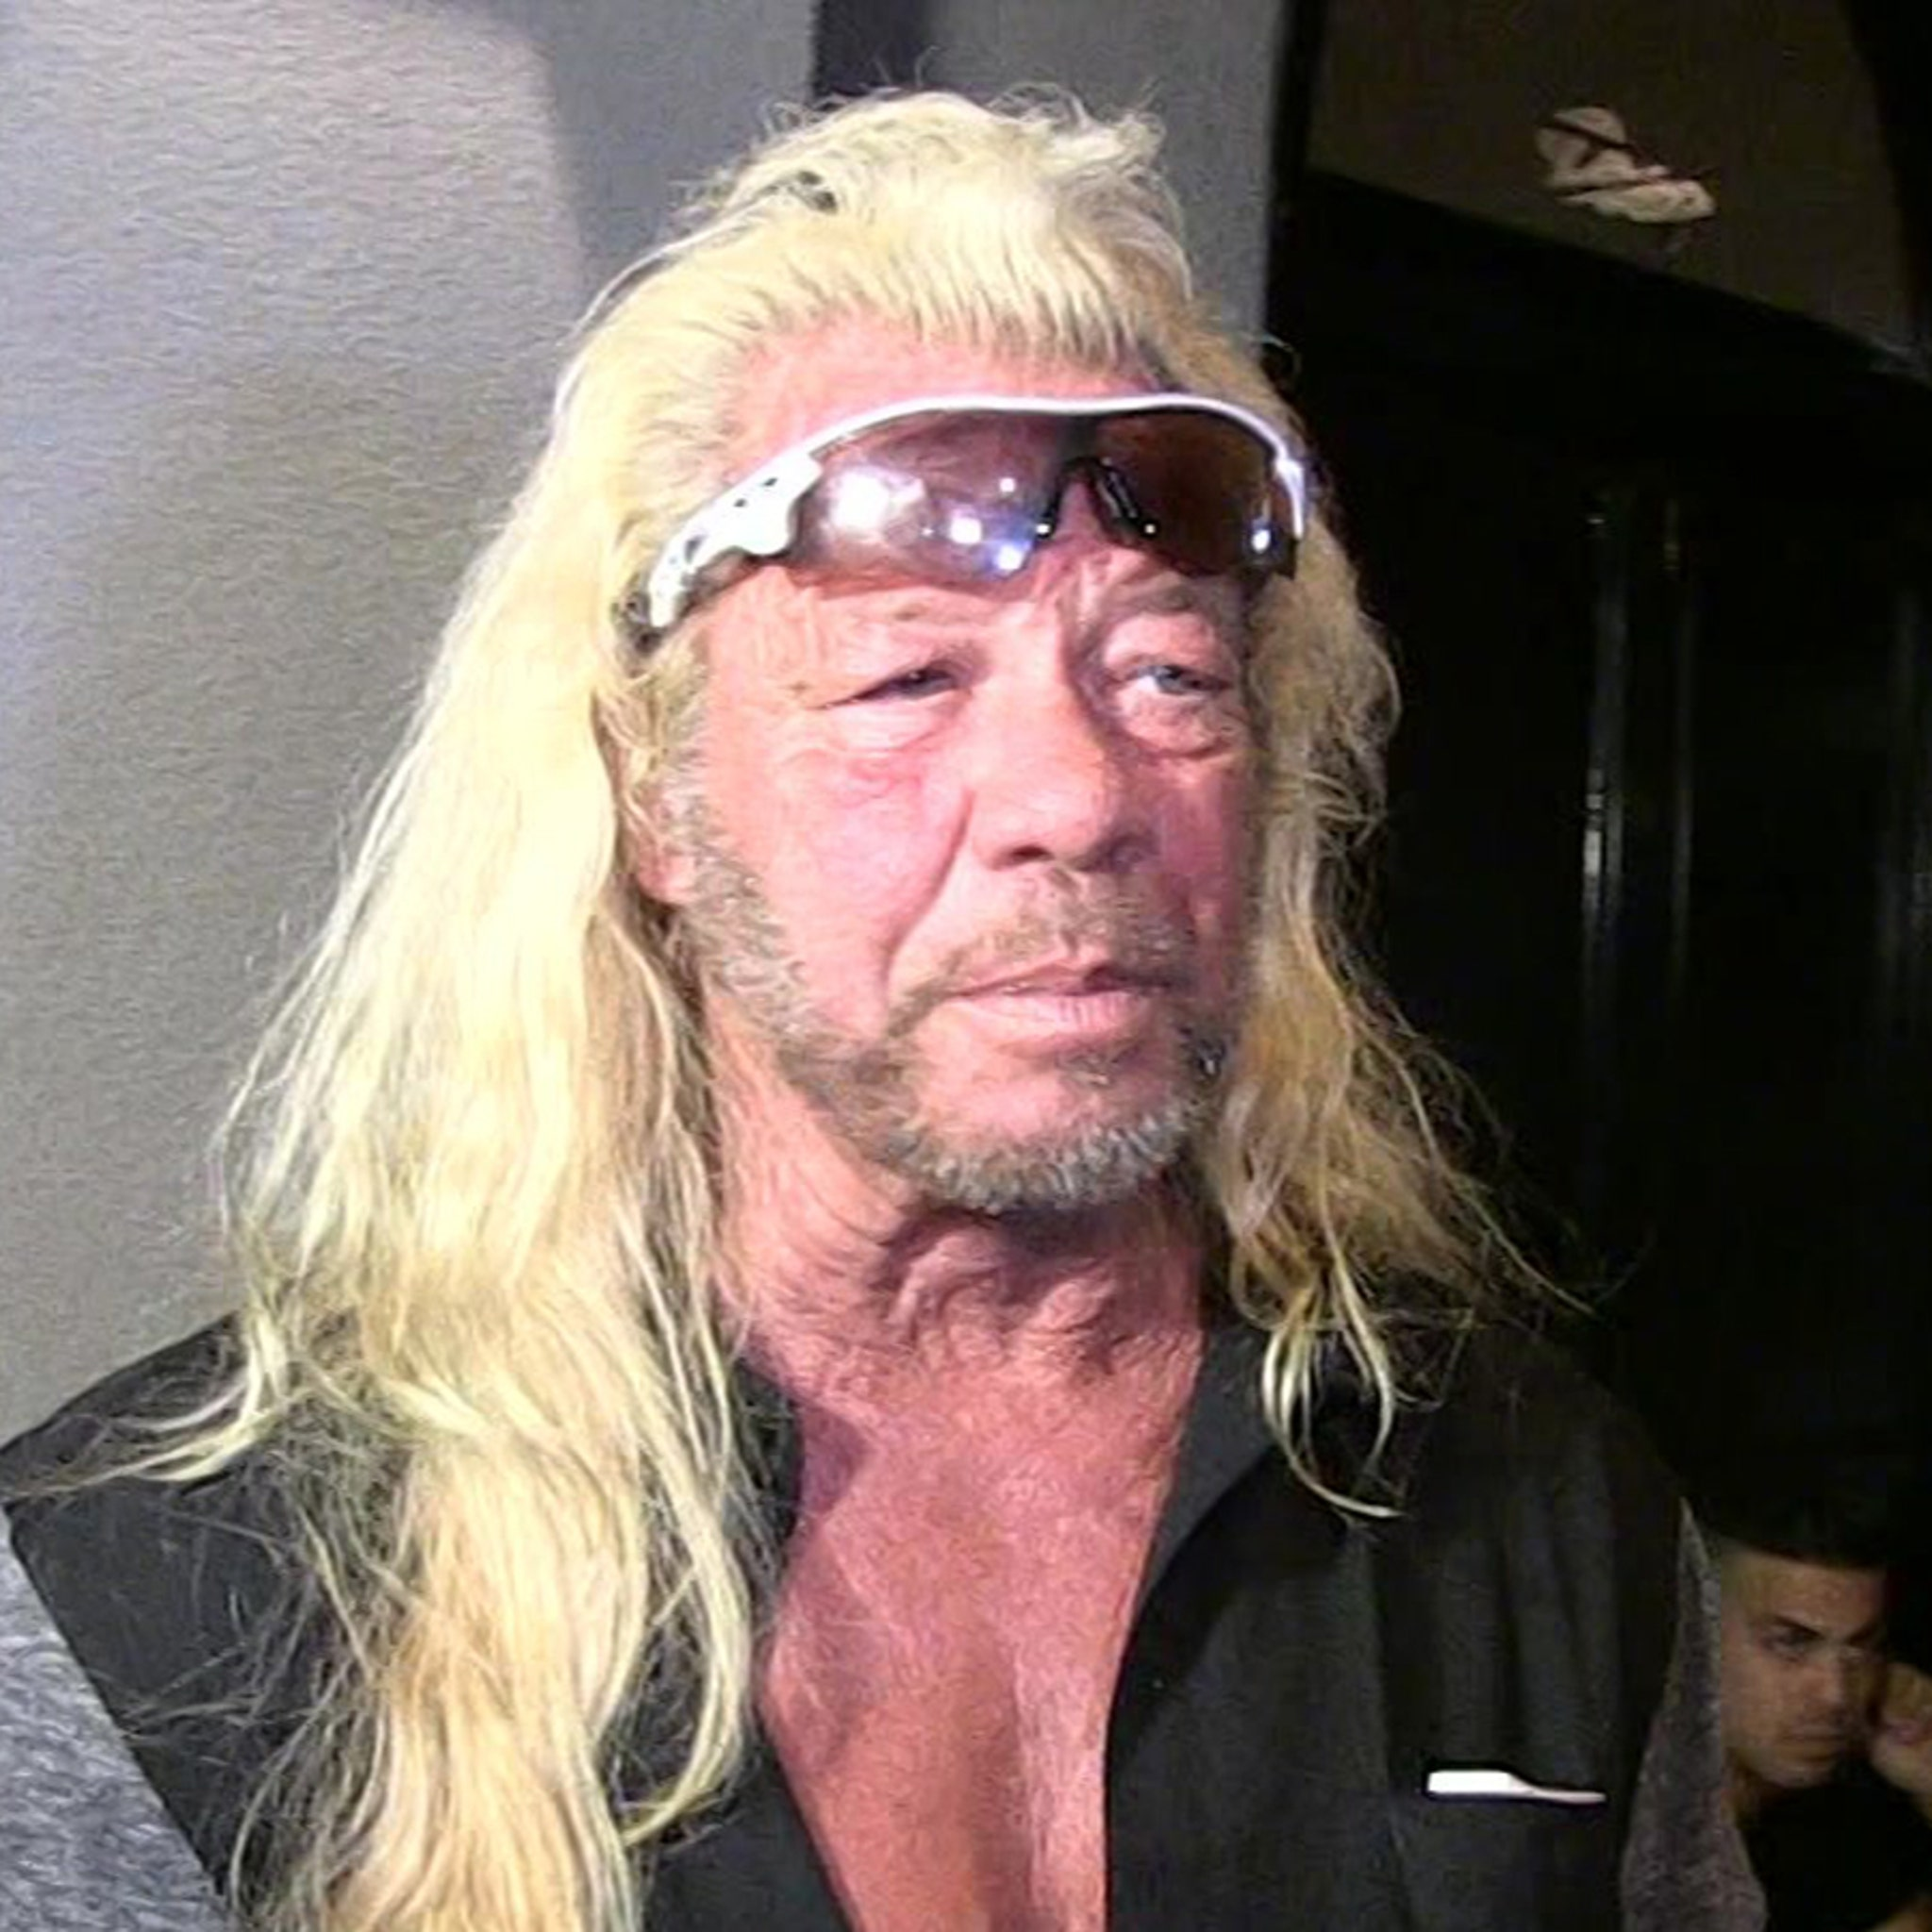 Dog the Bounty Hunter Suffers Heart Emergency, Might Need Surgery